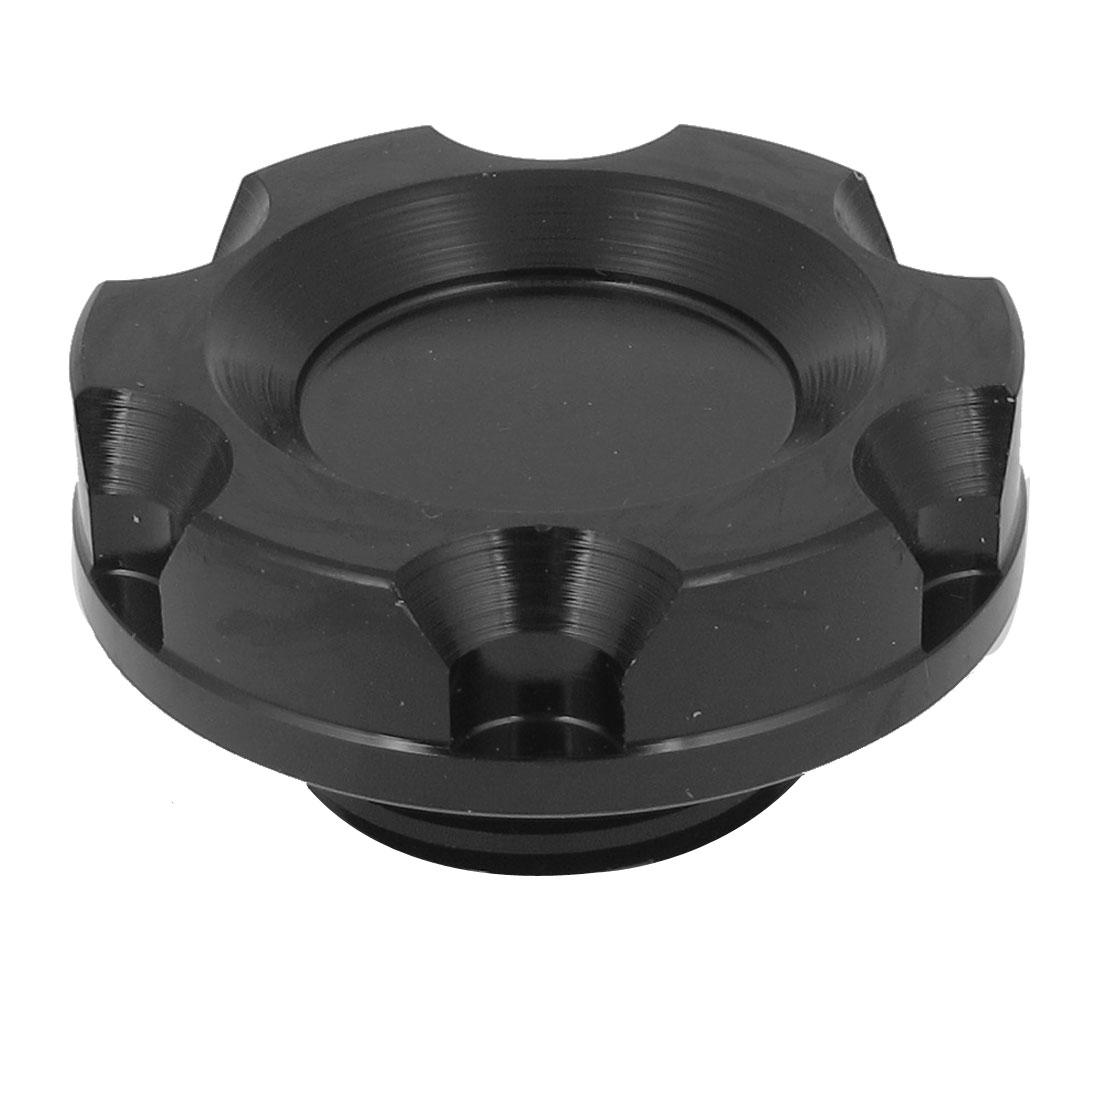 Car 50mm Dia Black Metal Engine Oil Filler Fuel Cover Cap Replacement for Honda